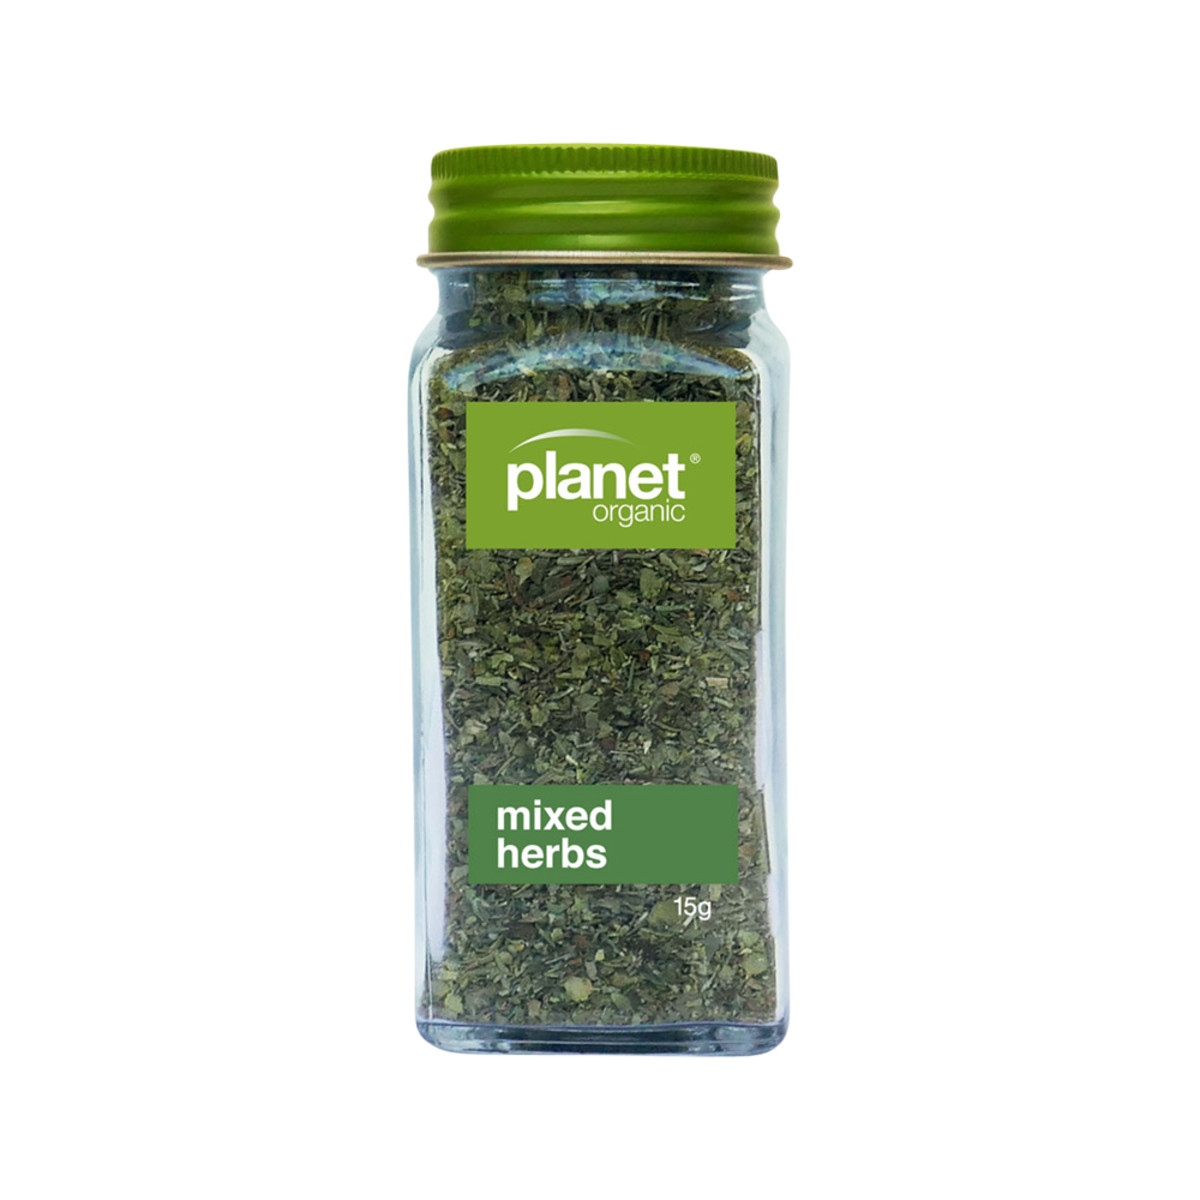 PLANET ORG MIXED HERGS 15G